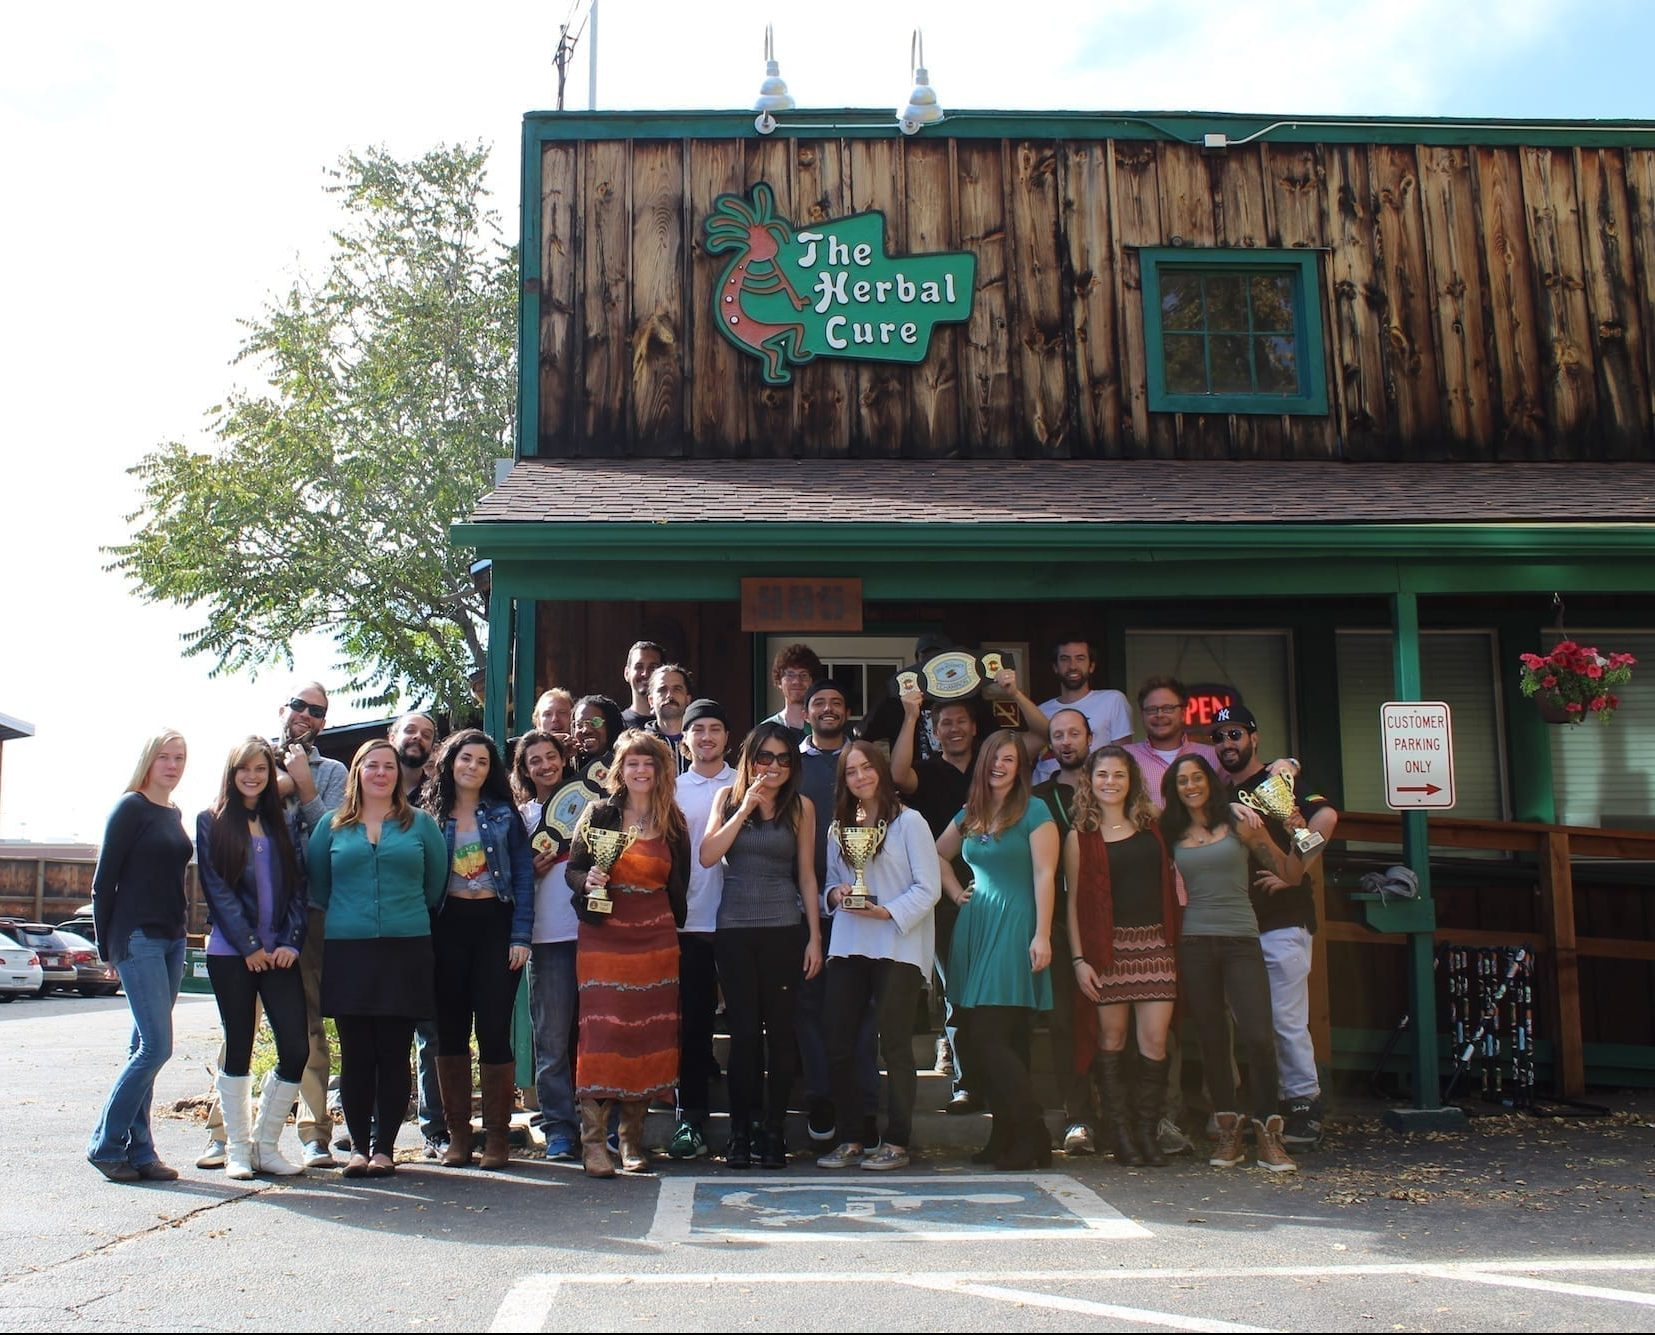 The Herbal Cure dispensary crew family